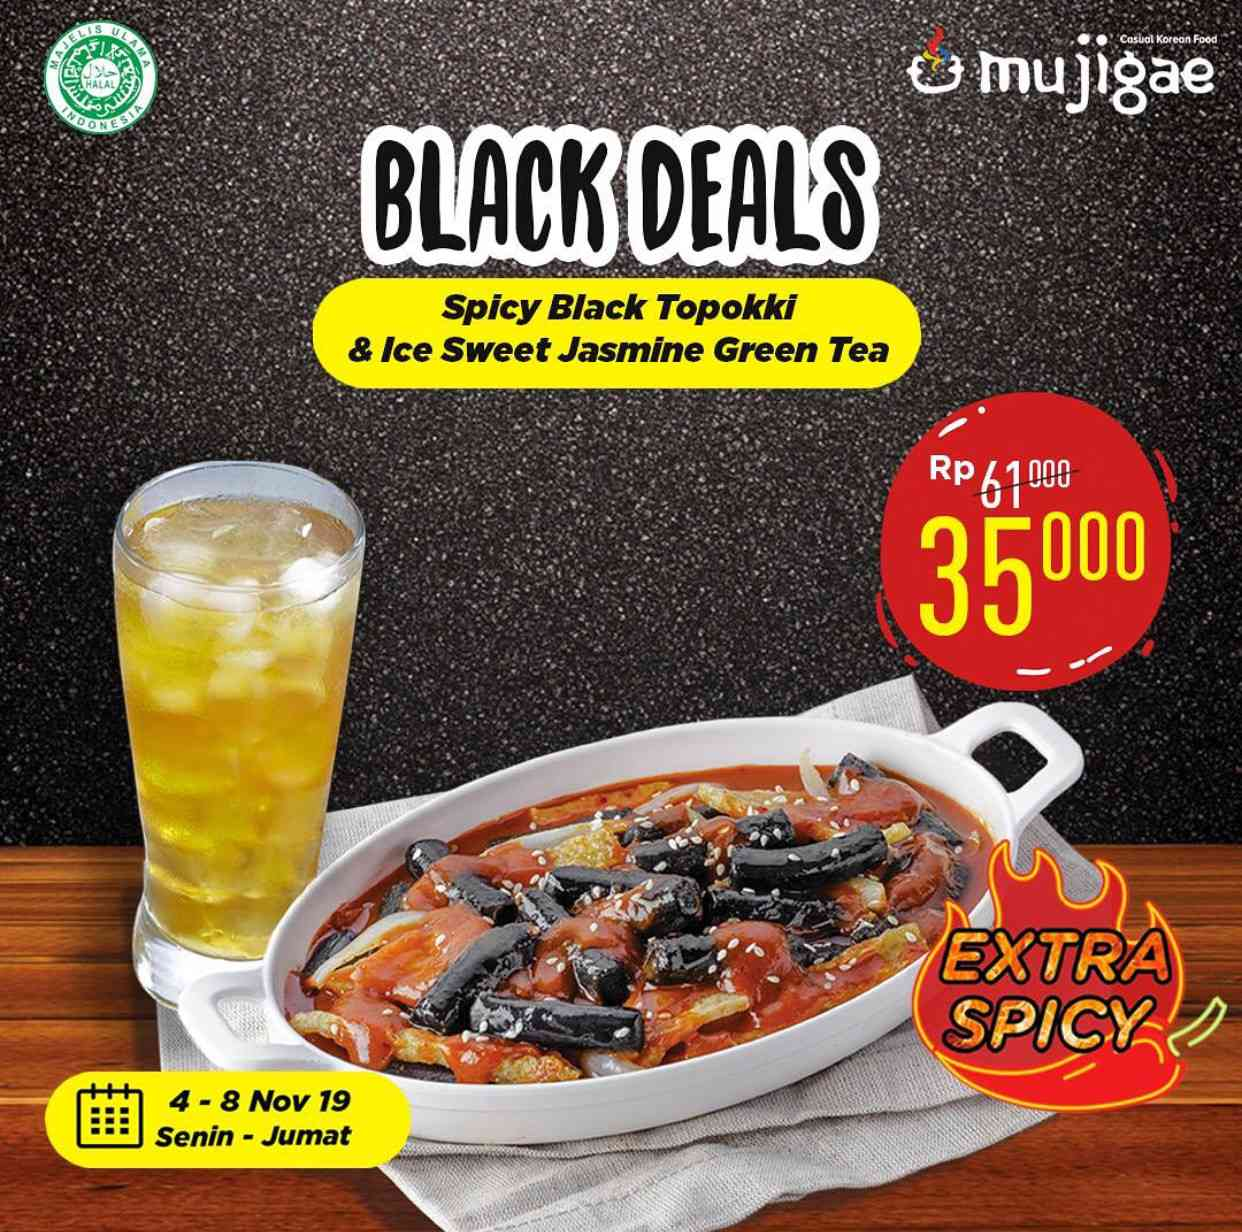 Mujigae Promo Black Deals Spicy Black Topokki hanya Rp 35.000